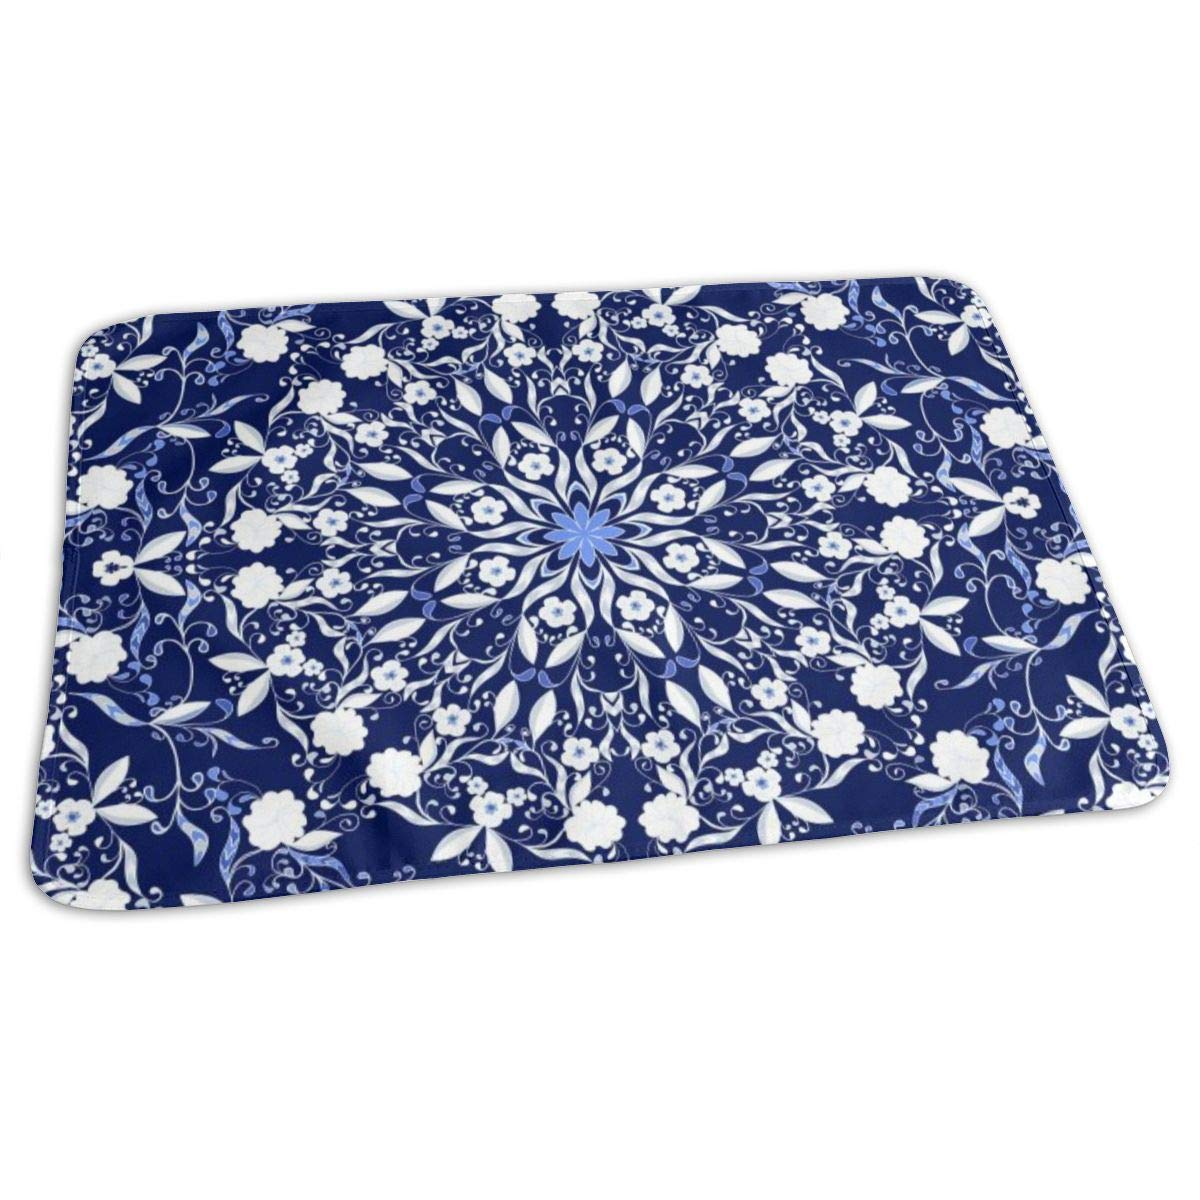 Osvbs Lovely Baby Reusable Waterproof Portable Dark Blue Background in Chinese Style Changing Pad Home Travel 27.5''x19.7'' by Osvbs